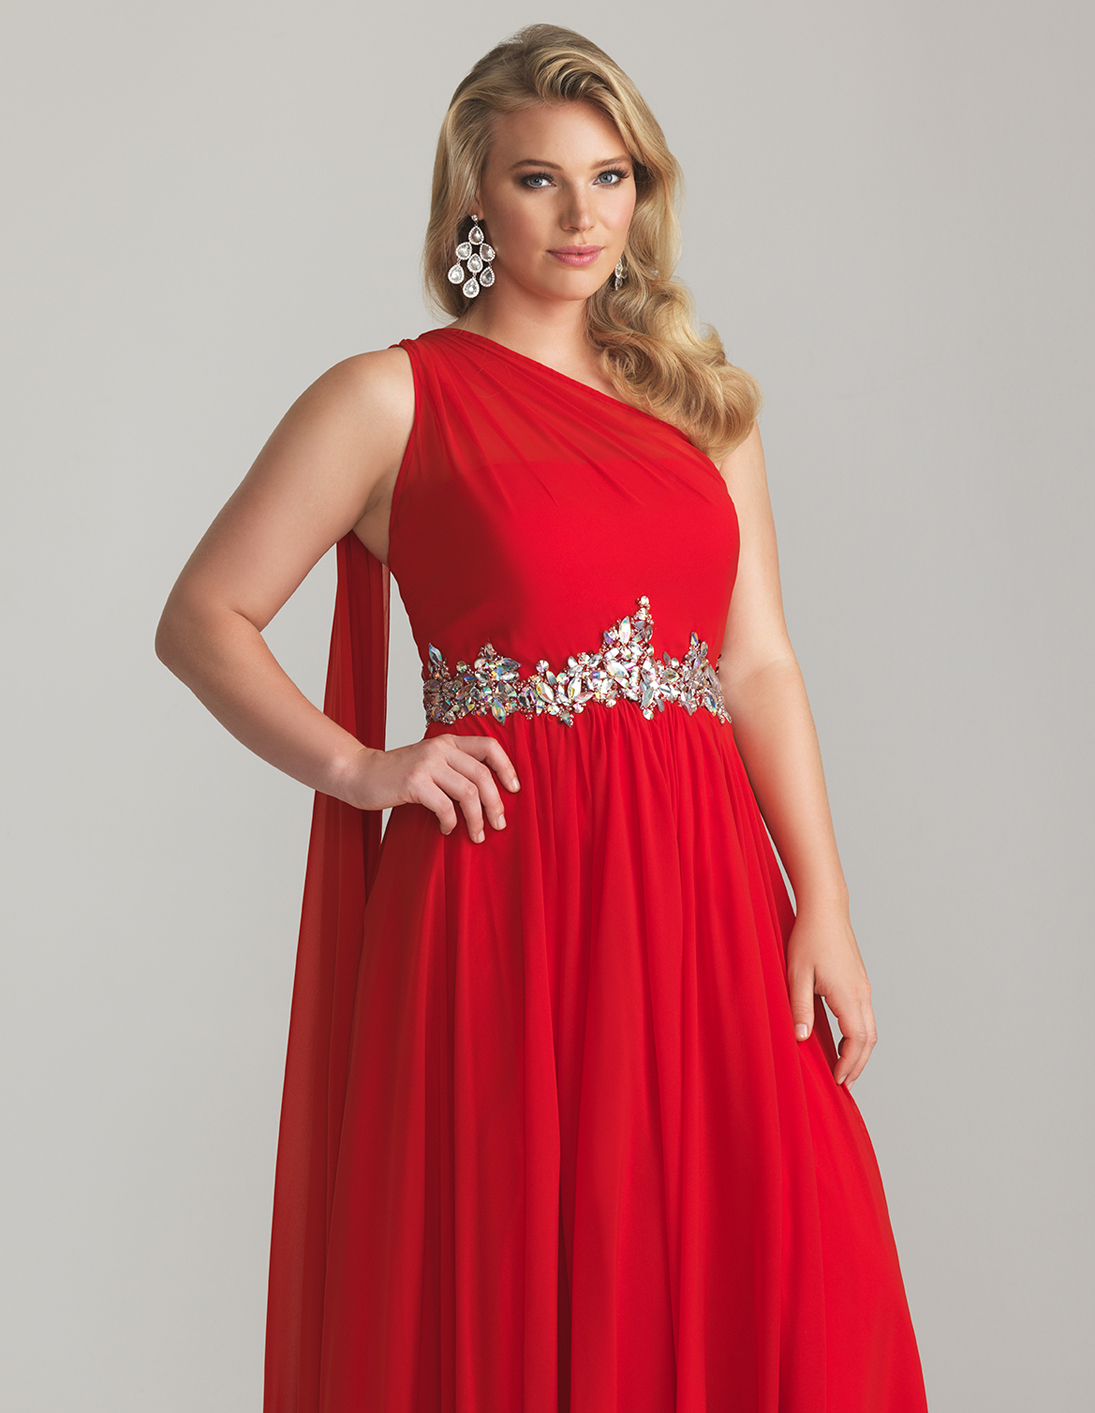 Cocktail Red Dresses - Boutique Prom Dresses